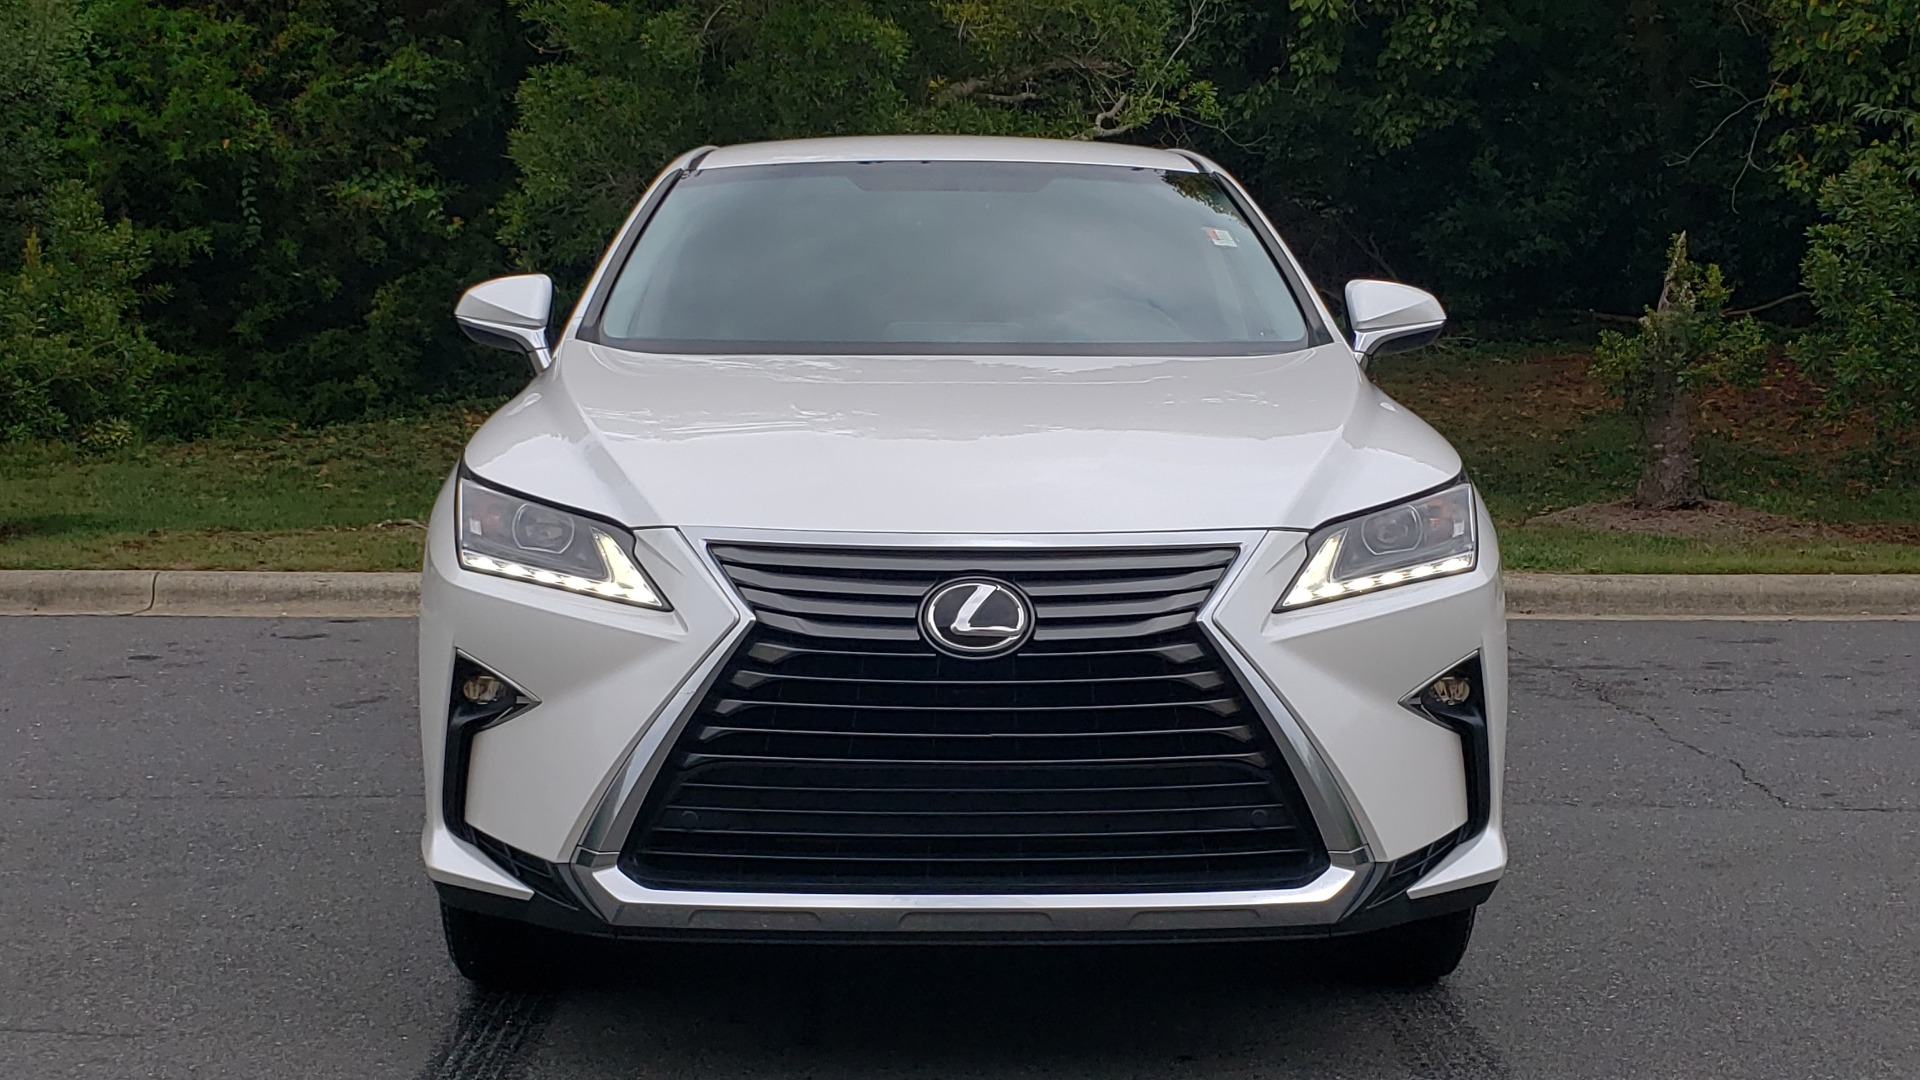 Used 2016 Lexus RX 350 FWD / 4-DR / 3.5L V6 / 8-SPD AUTO / LEATHER / REARVIEW for sale $31,995 at Formula Imports in Charlotte NC 28227 22